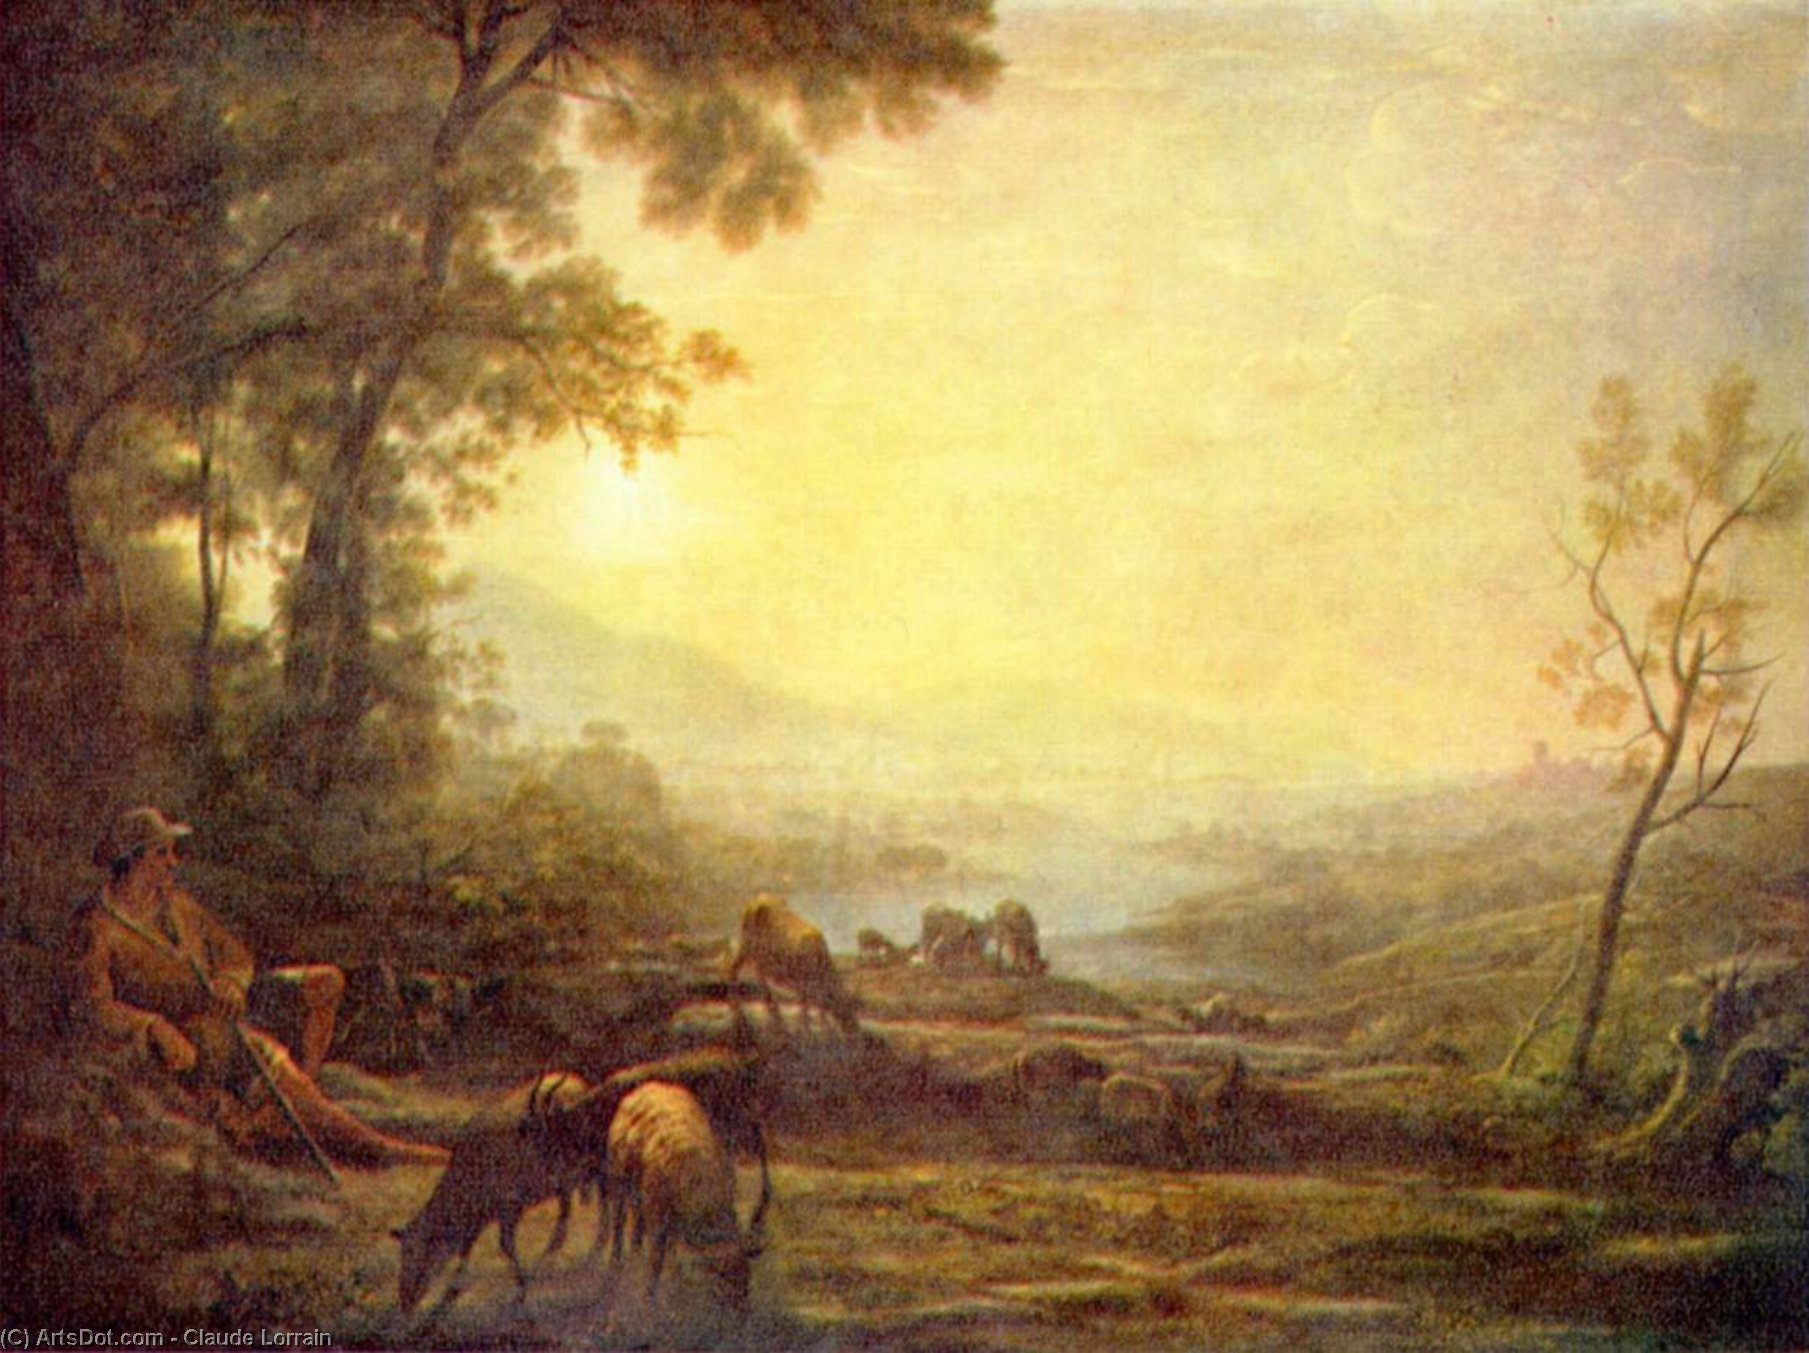 Shepherd, Oil On Canvas by Claude Lorrain (Claude Gellée)